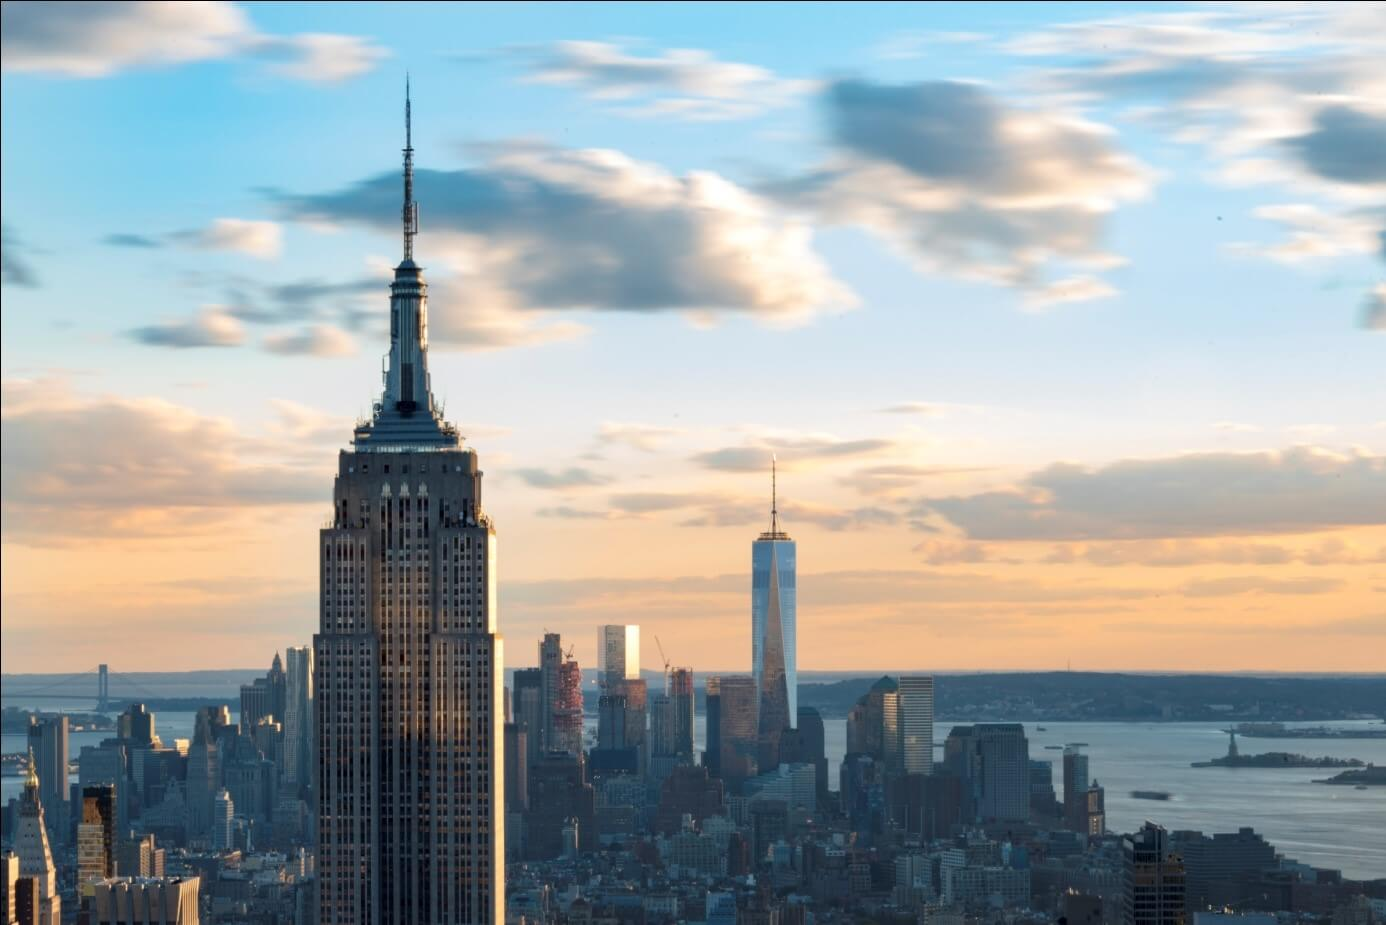 Empire-state-building-usa-new-york